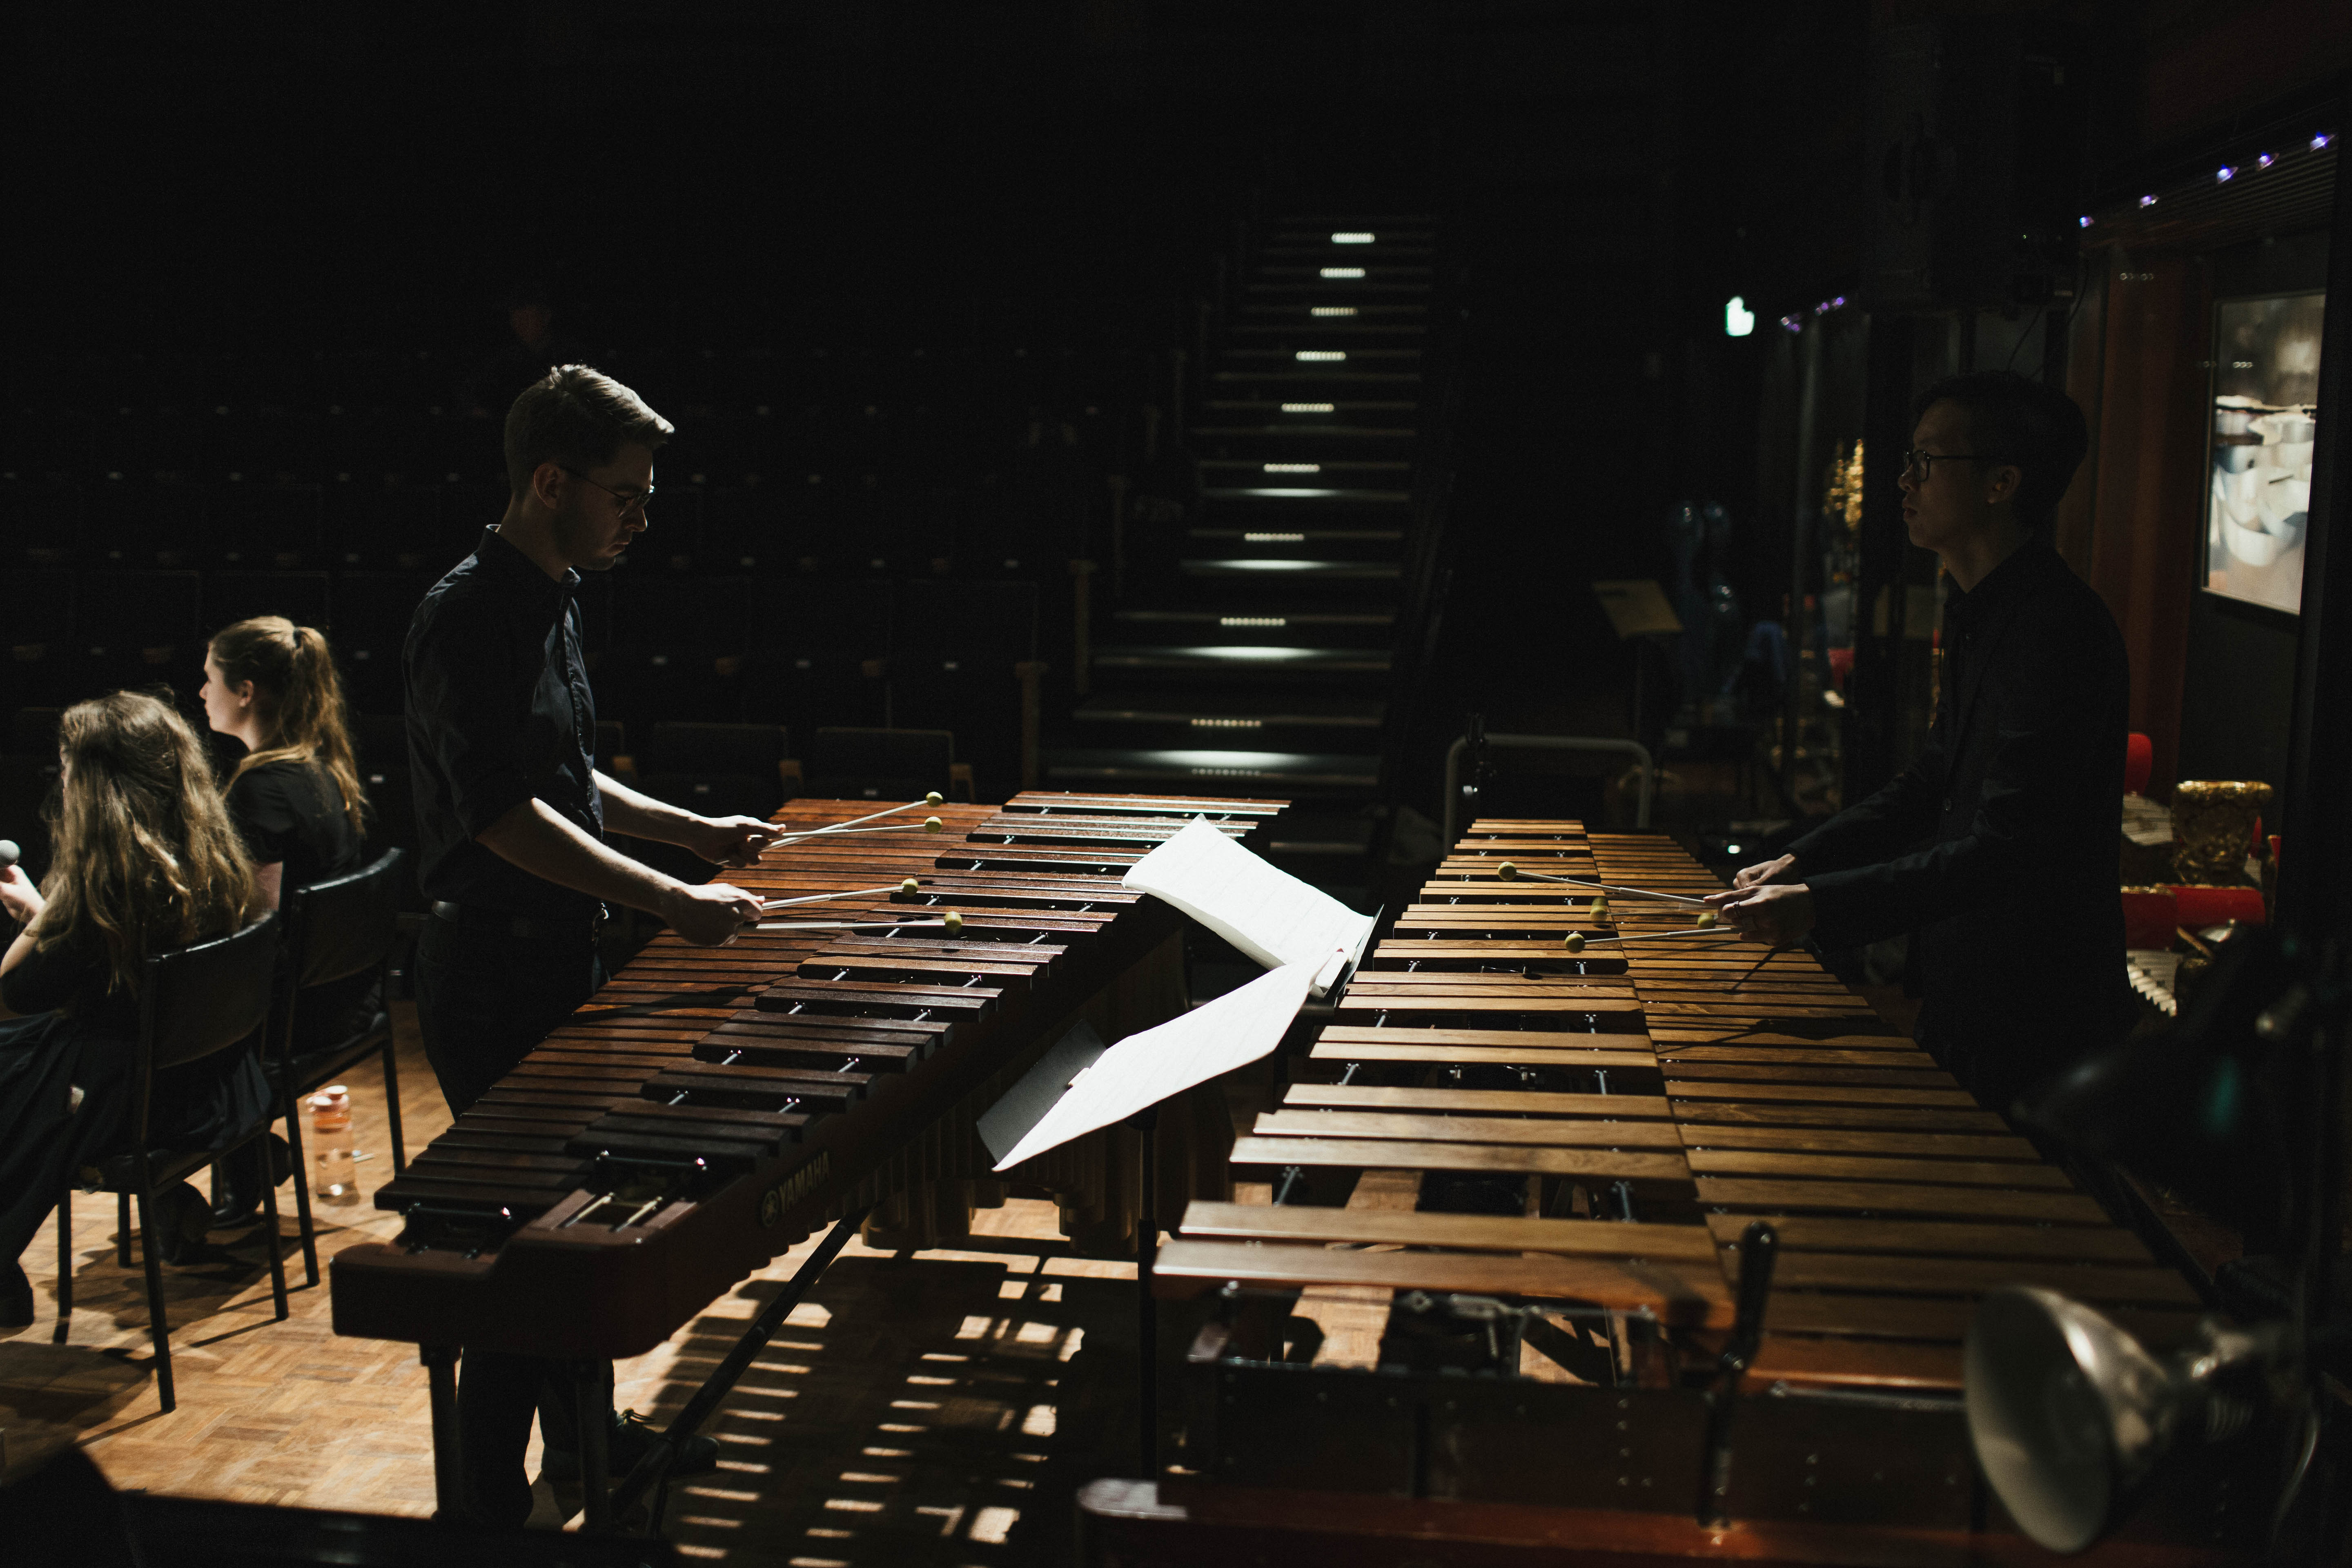 Steve Reich's Music for 18 Musicians